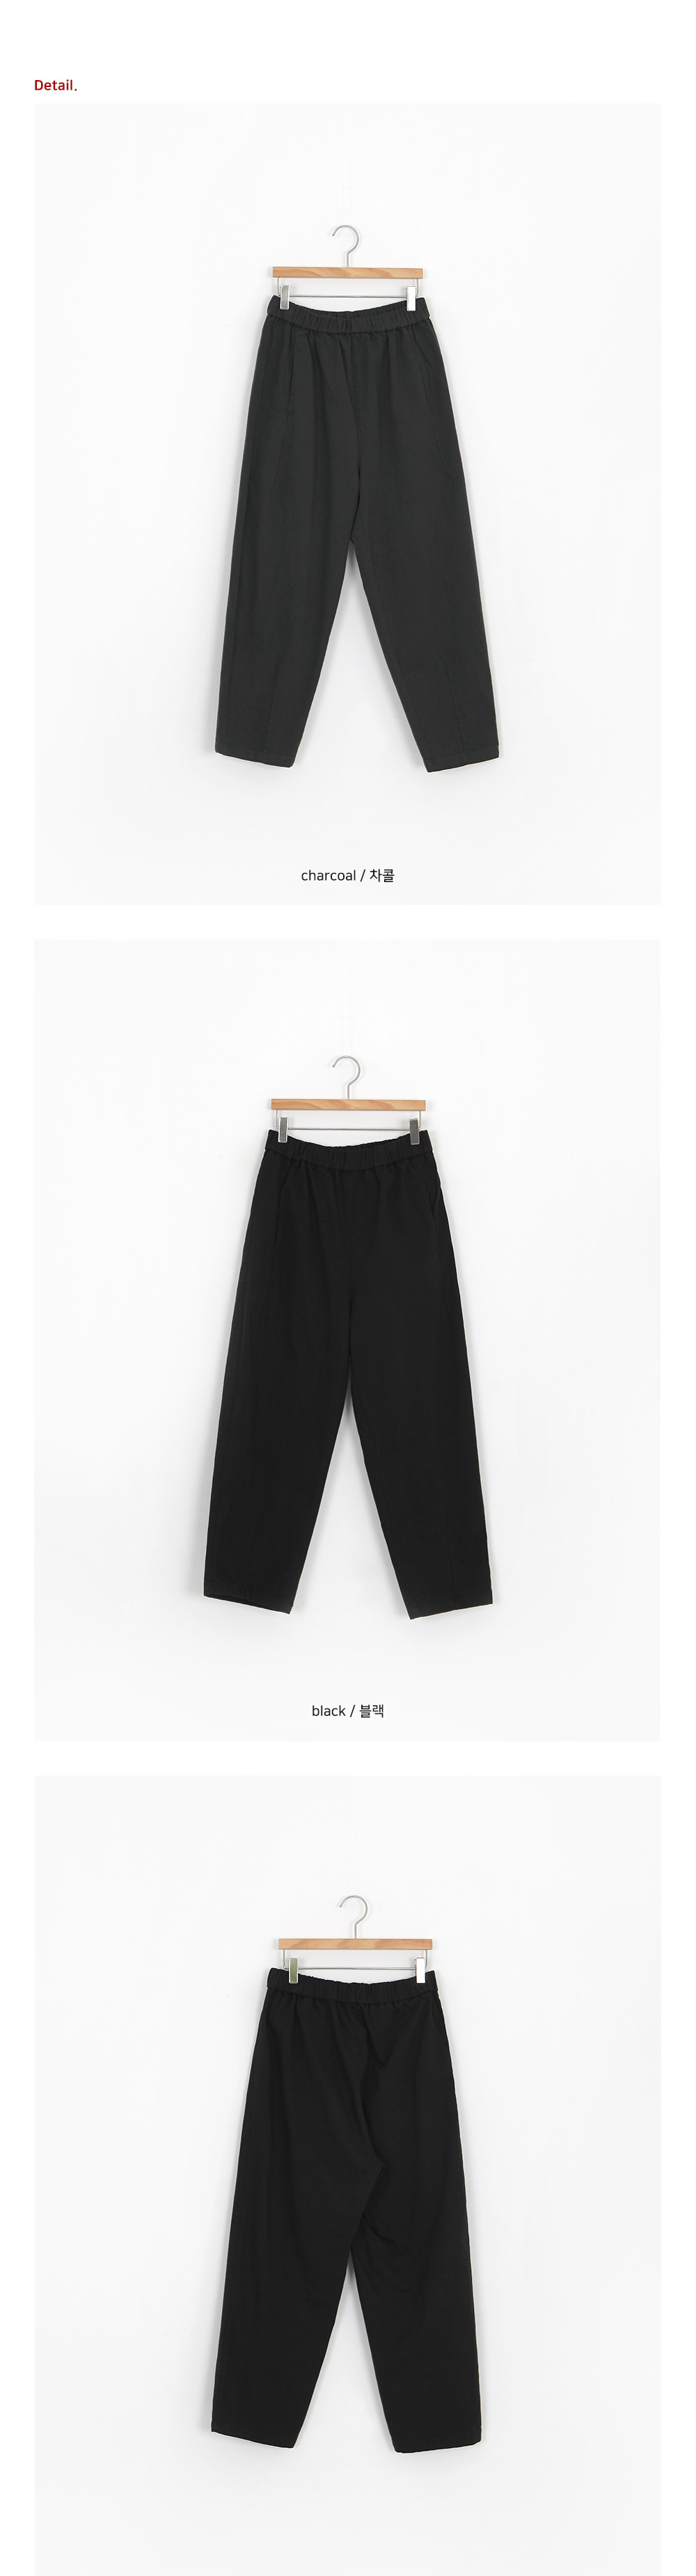 Banded cotton exhaust pants